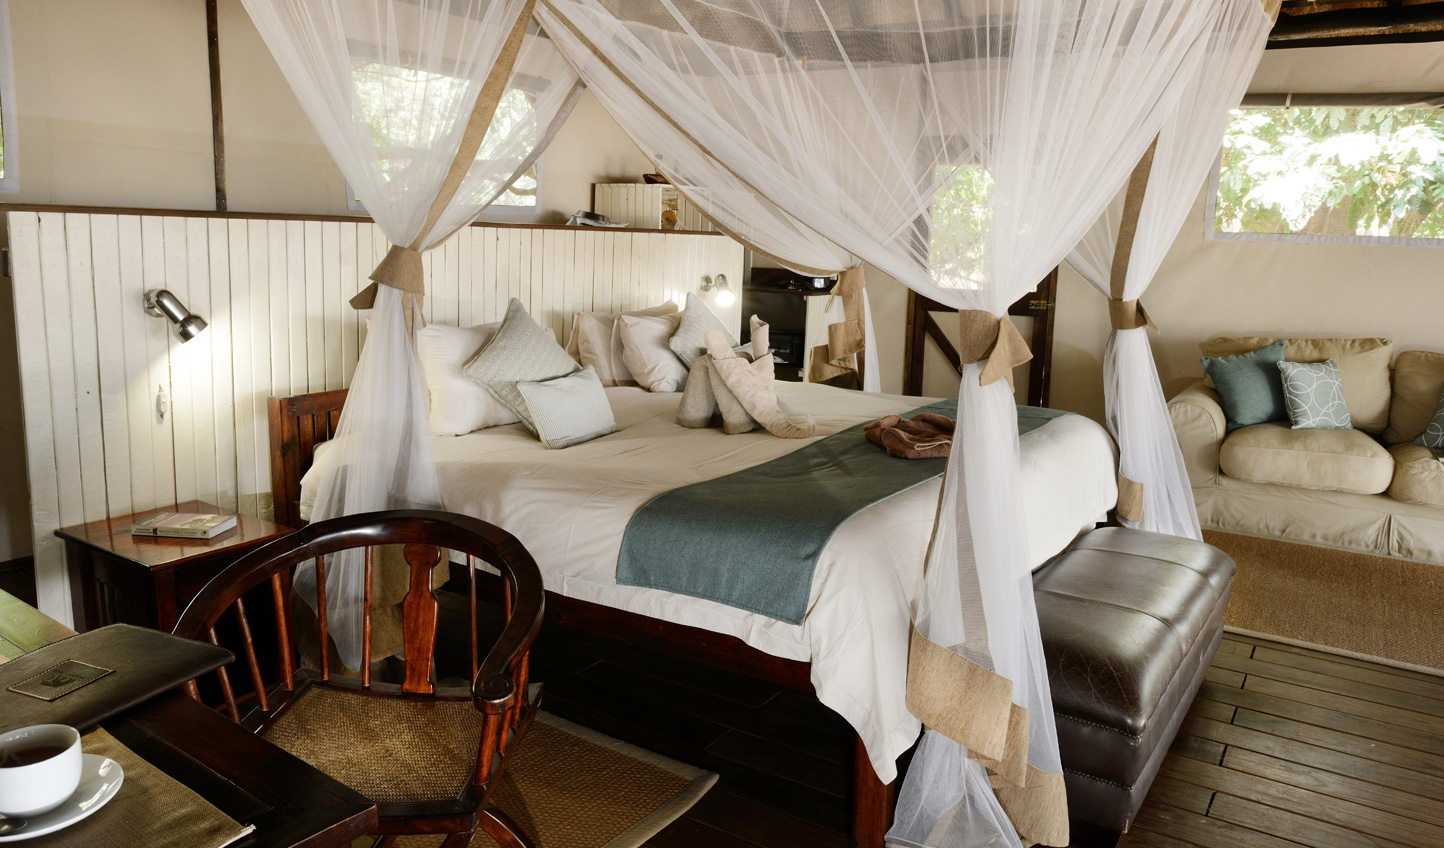 Super-king-size beds and fine Egyptian linen means there is no compromising on luxury